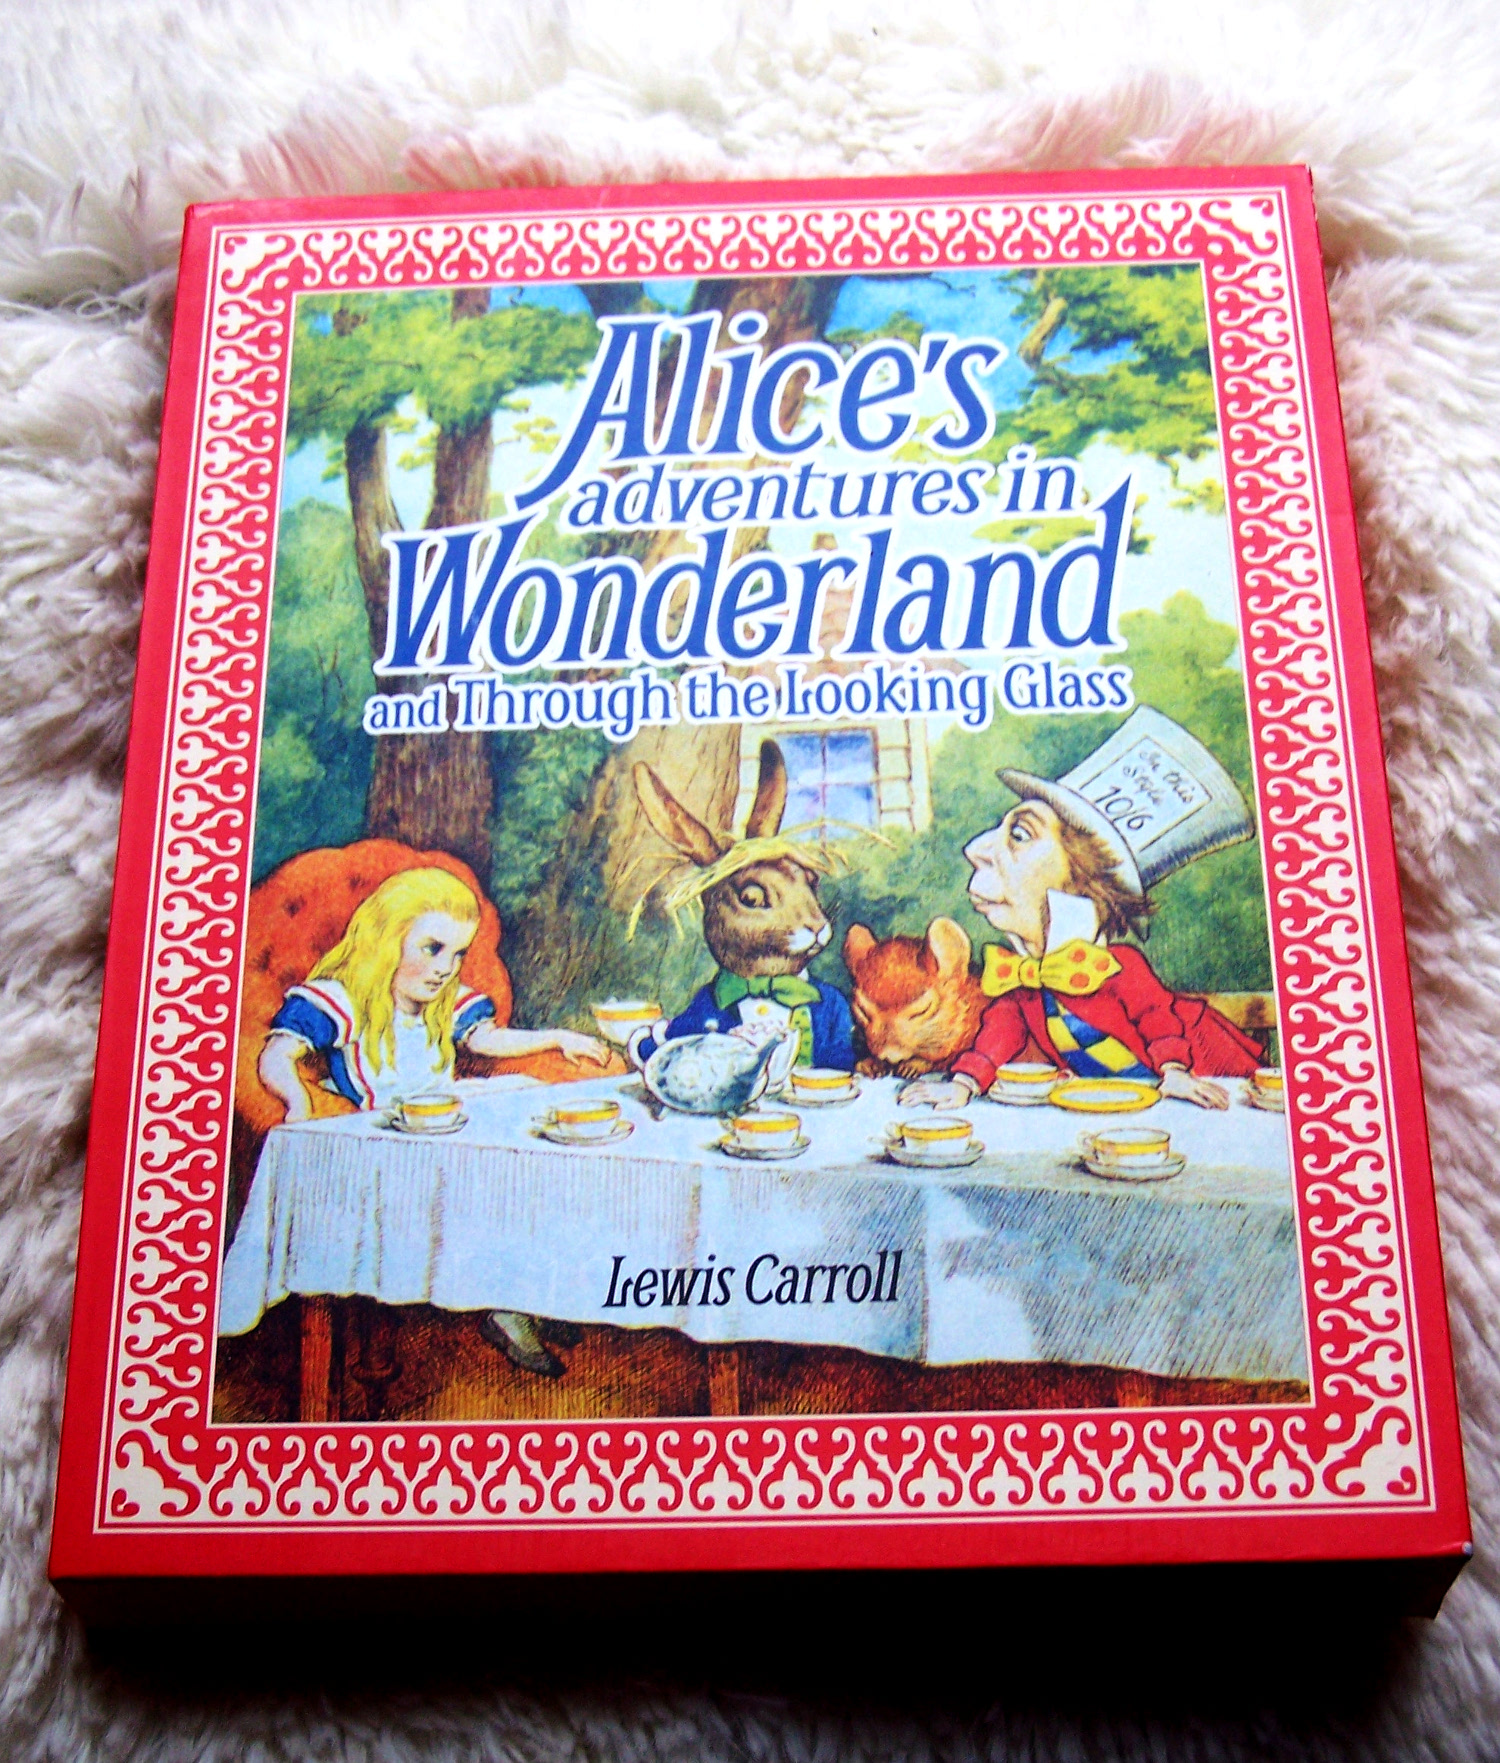 Alice Alice's Adventures in Wonderland and Through the looking glass Lewis Carroll illustrated slipcased book picture drawings mad hatter white rabbit fantasy children kids books new edition